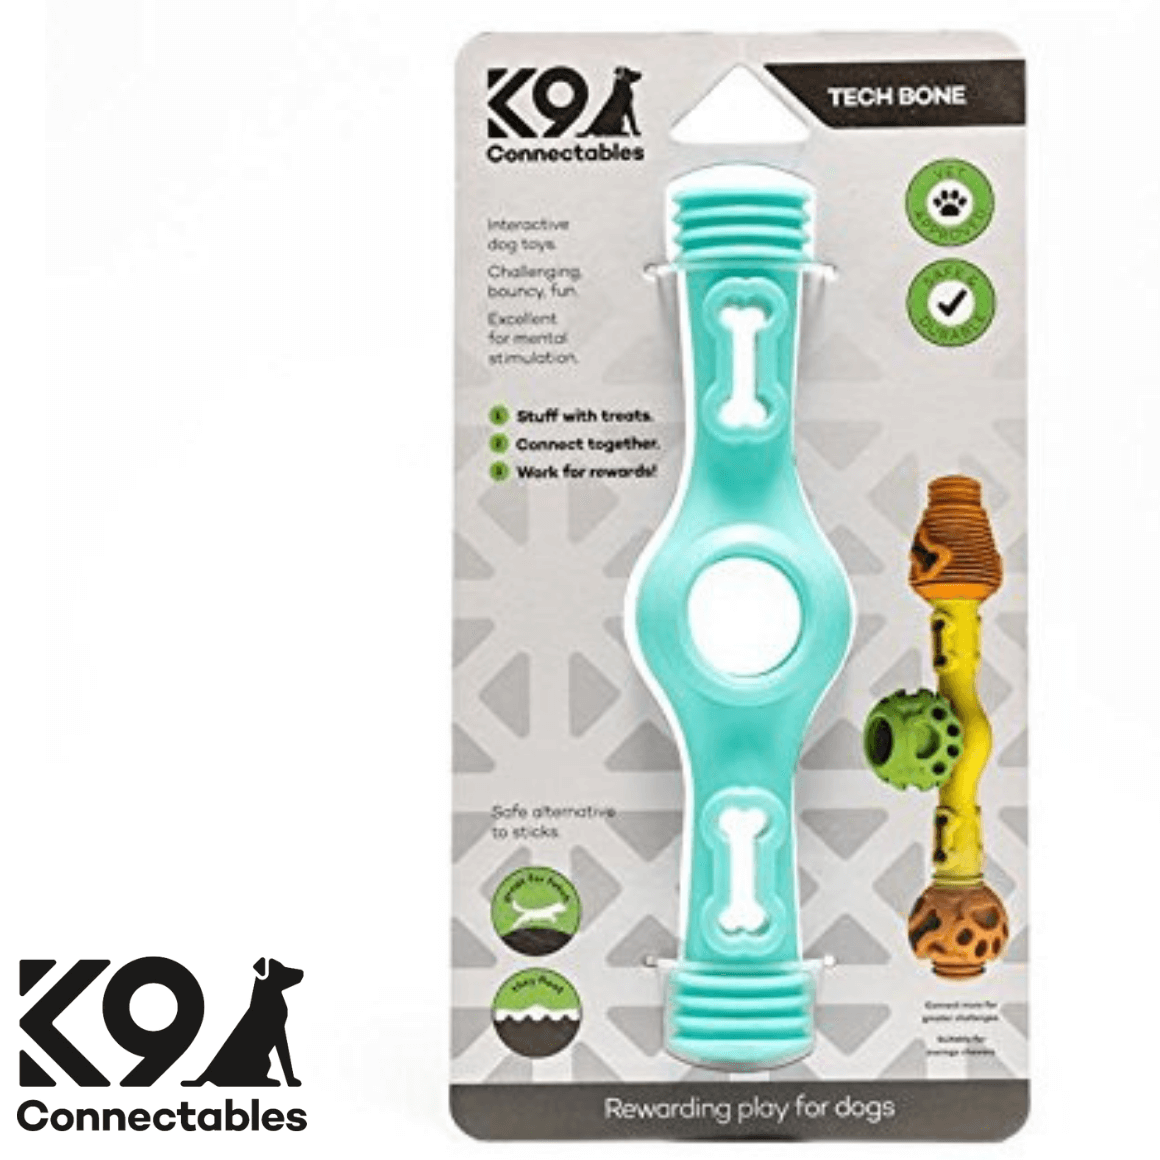 k9 Connectables Australia - The Tech Bone Green